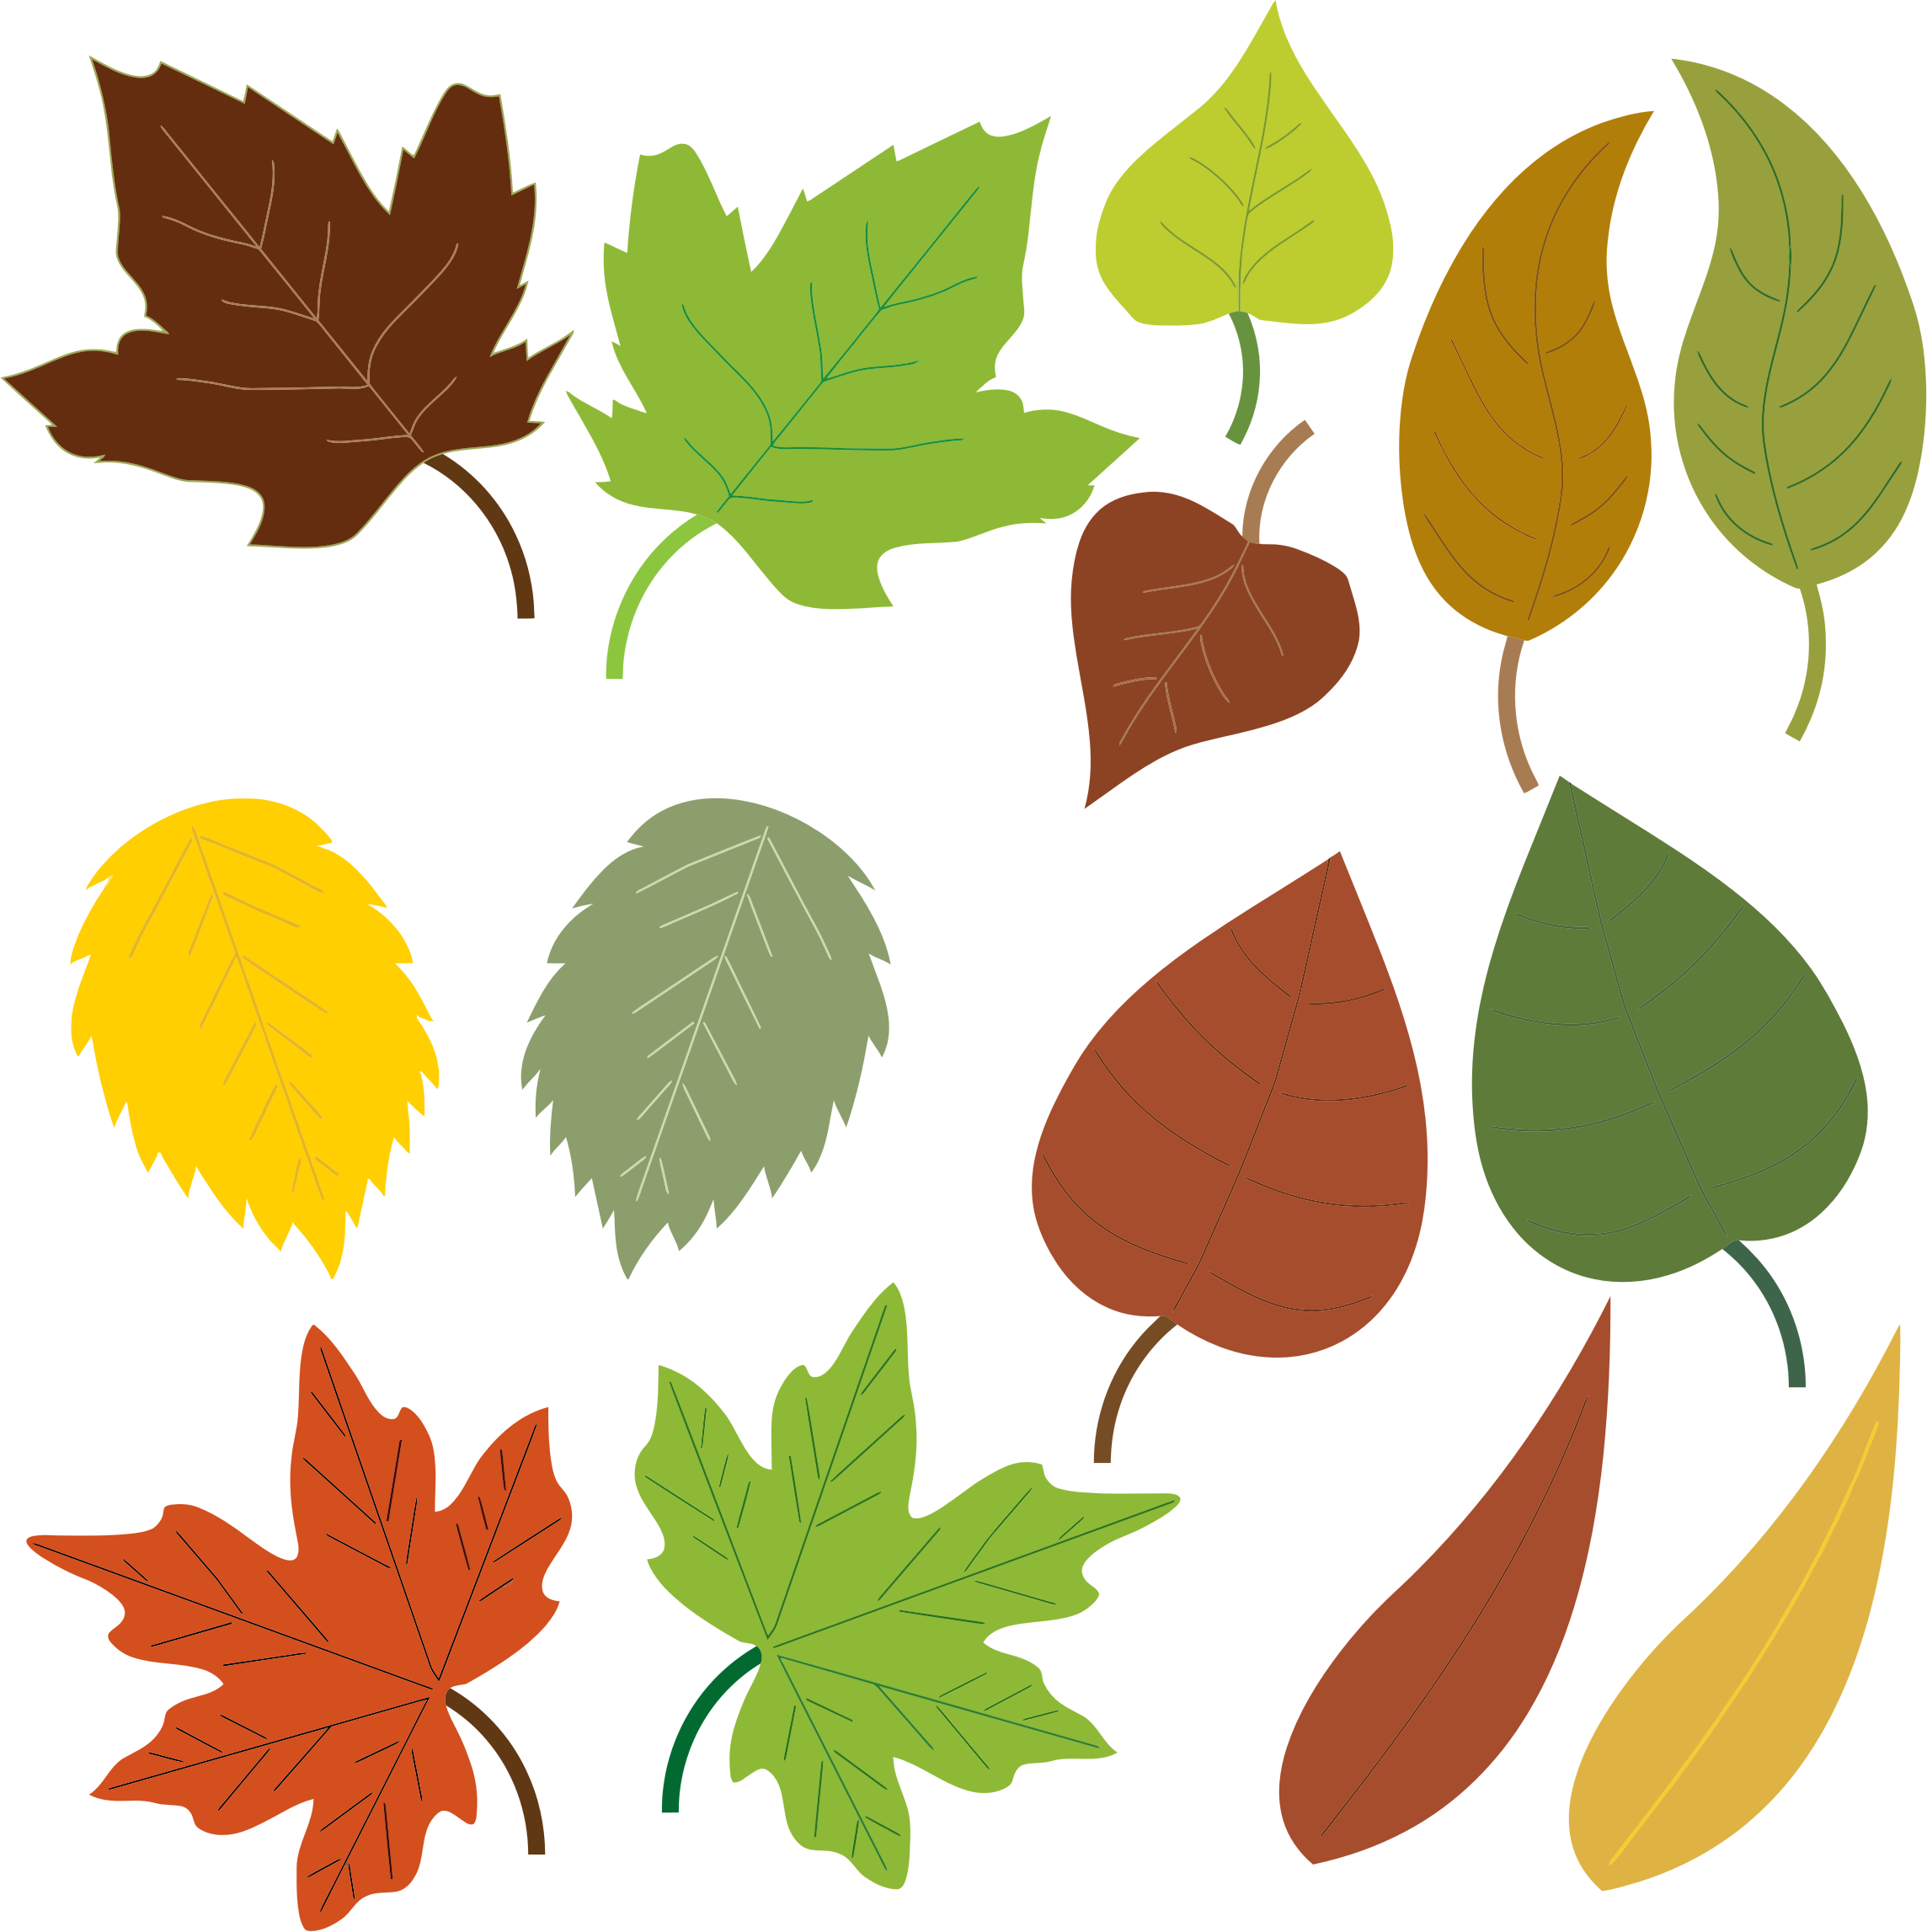 Variety Of Leaves by GDJ